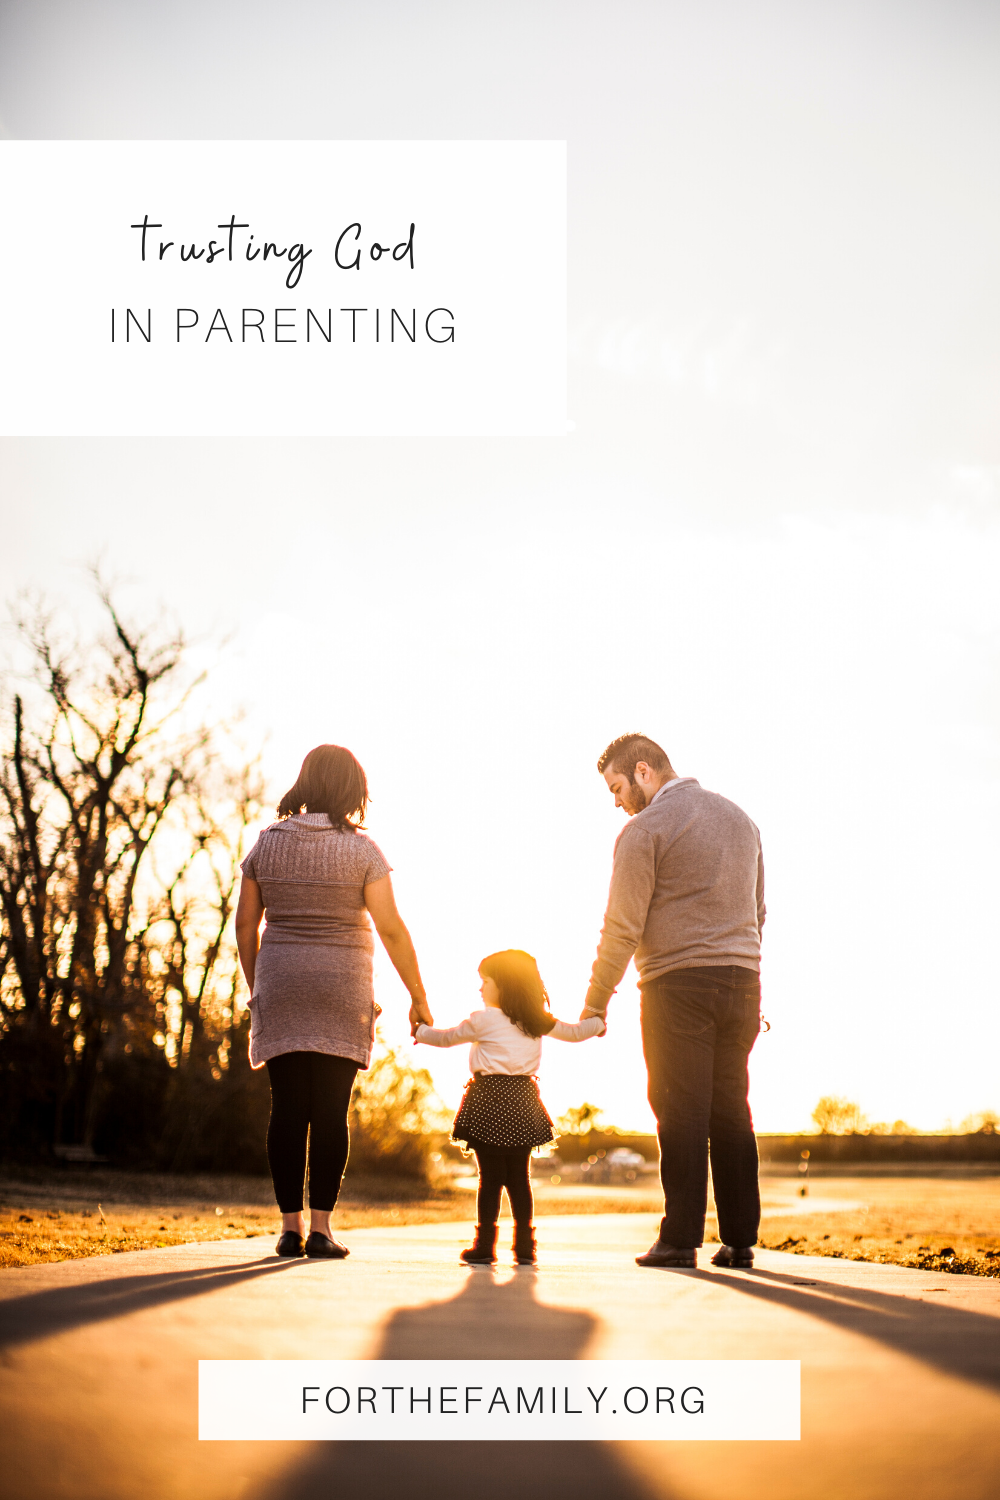 Parenting God's way is not an easy task. We can consult God on all the details of life, but trusting Him with the outcome is vital. When we trust in our Father, we can find rest, peace, and joy!